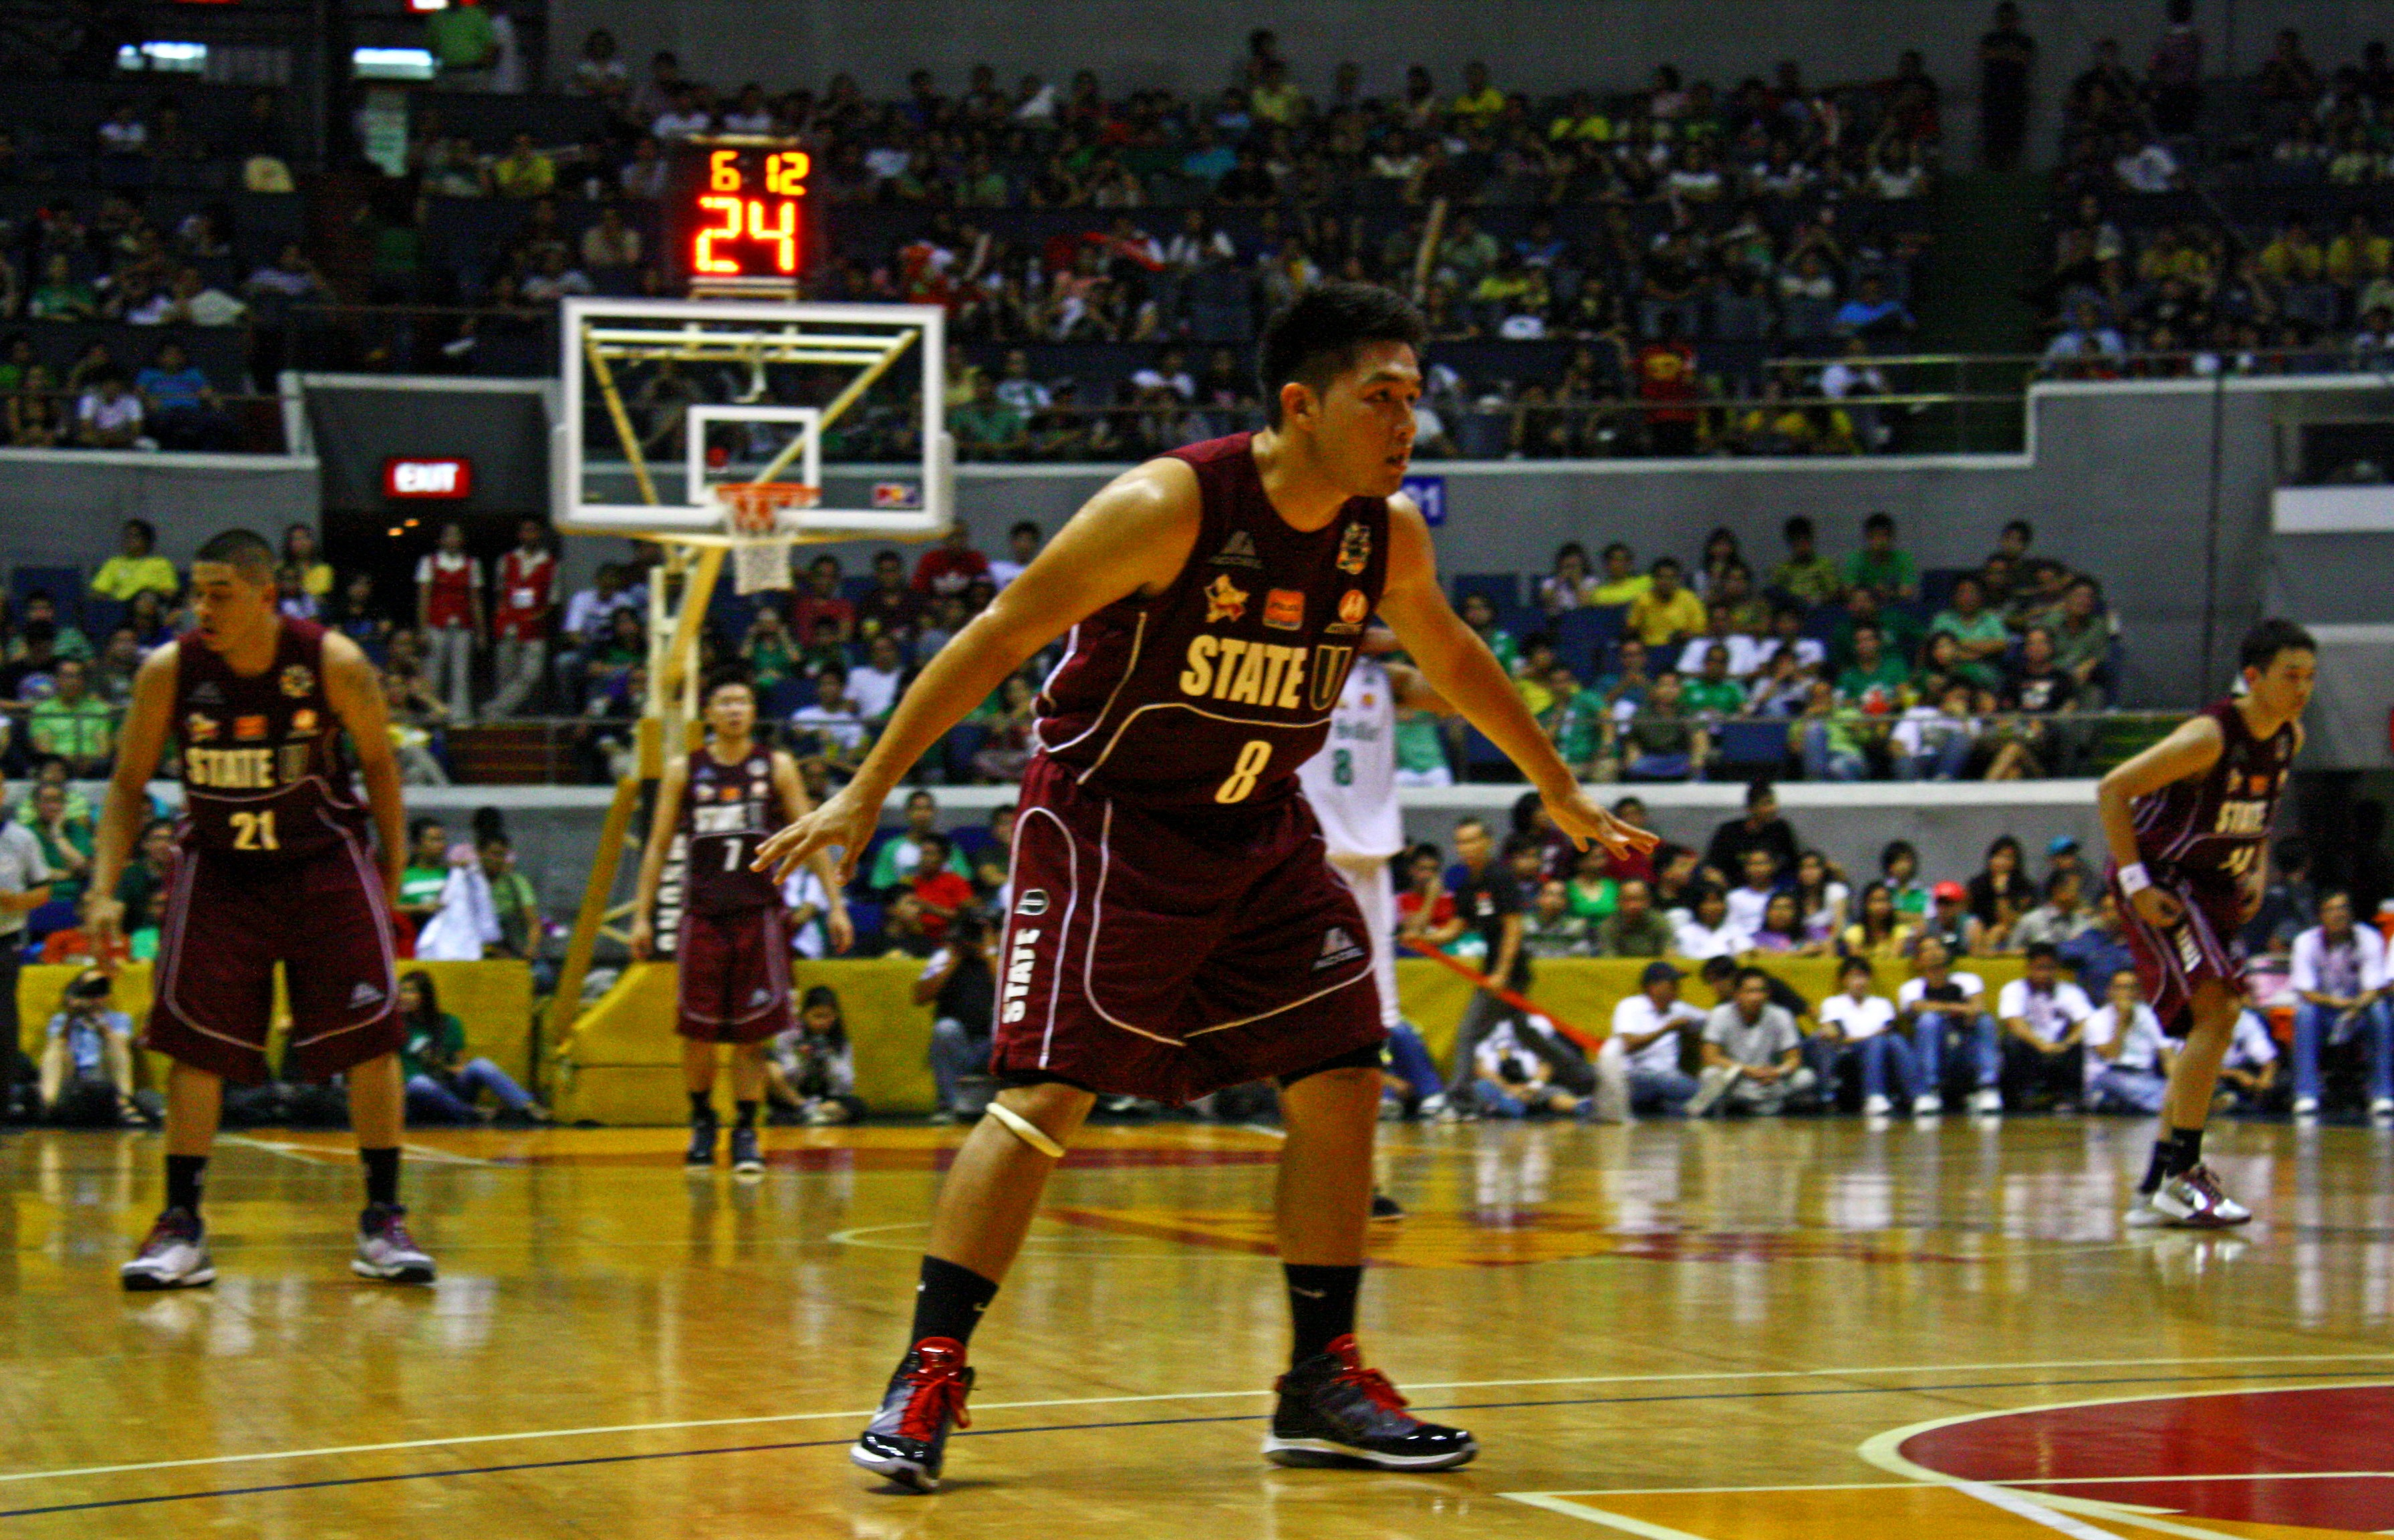 Atkins leads Archers past Maroons, 80-62